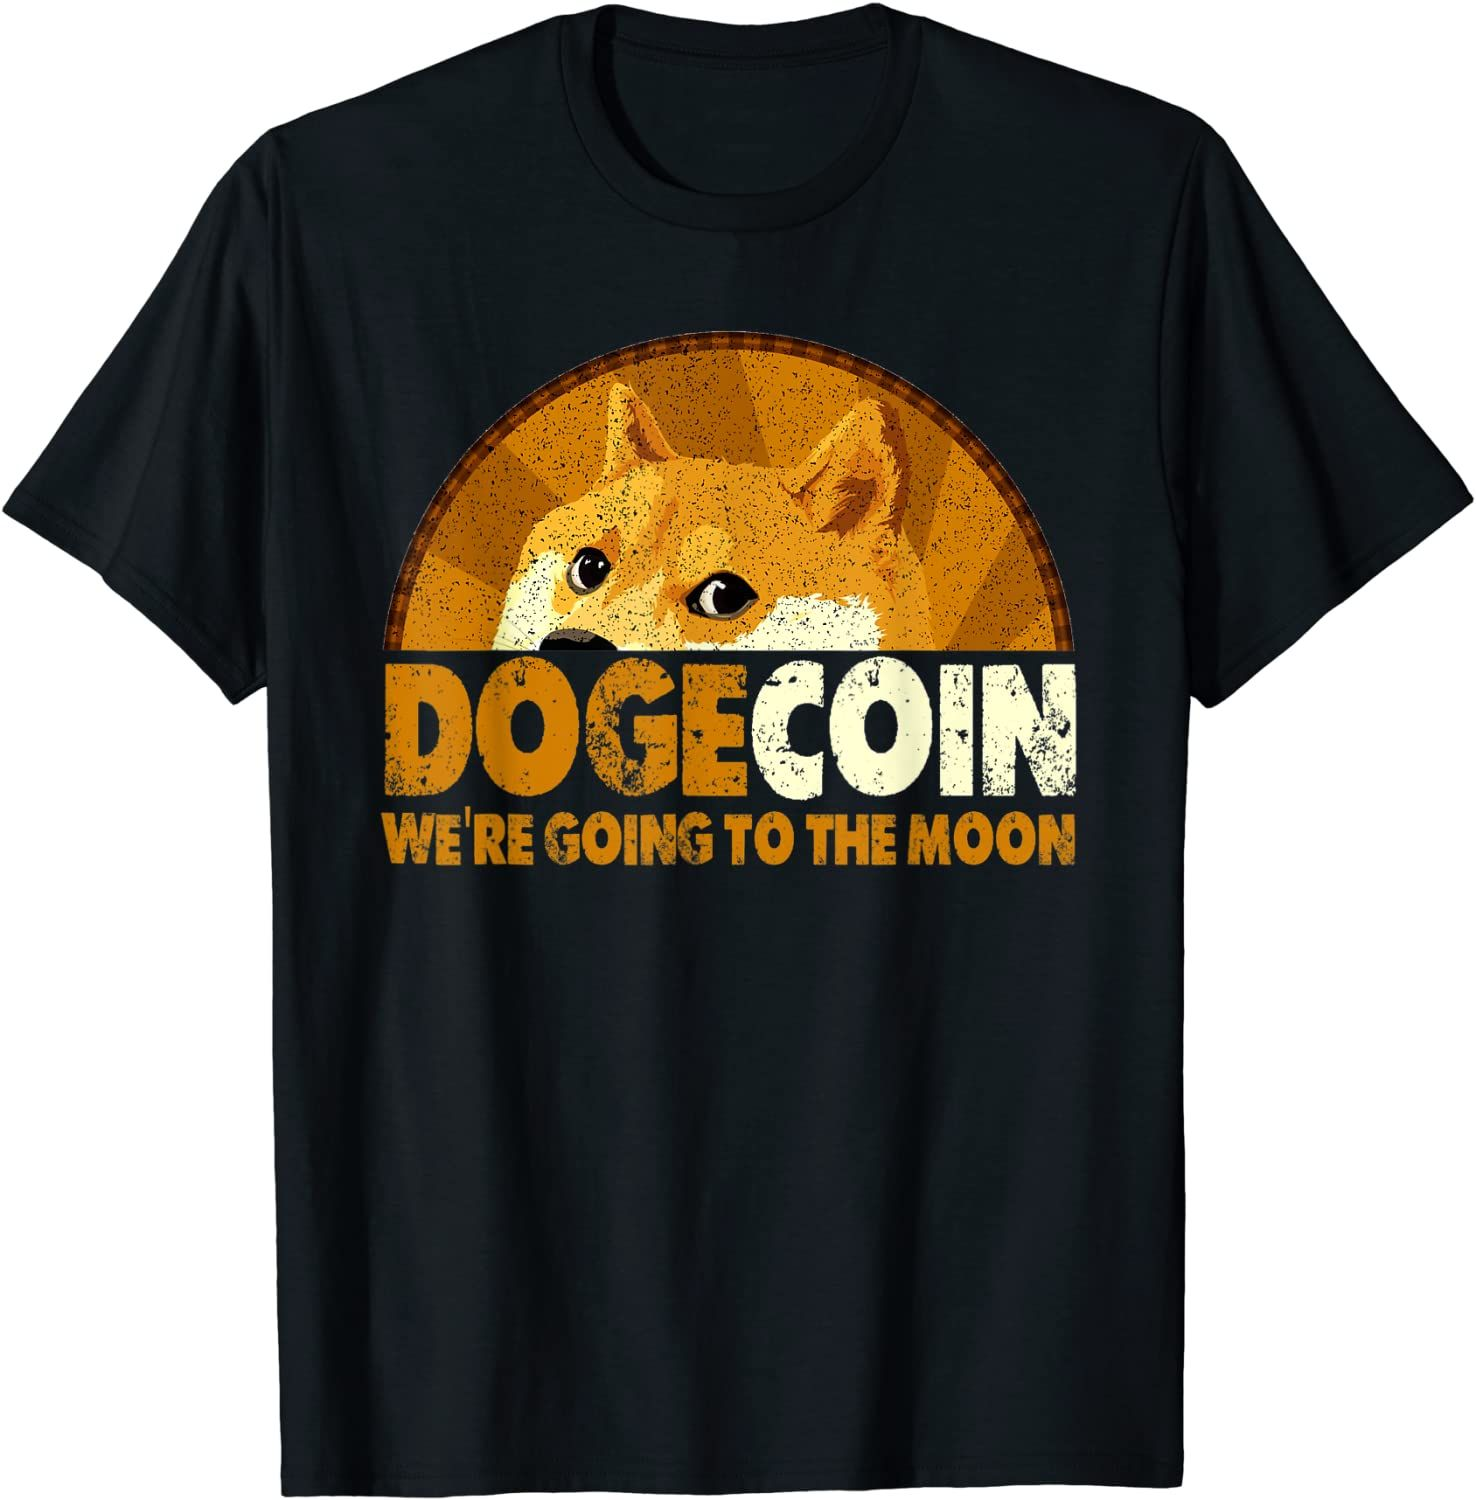 Dogecoin We're going To the Moon Funny Cryptocurrency T ...